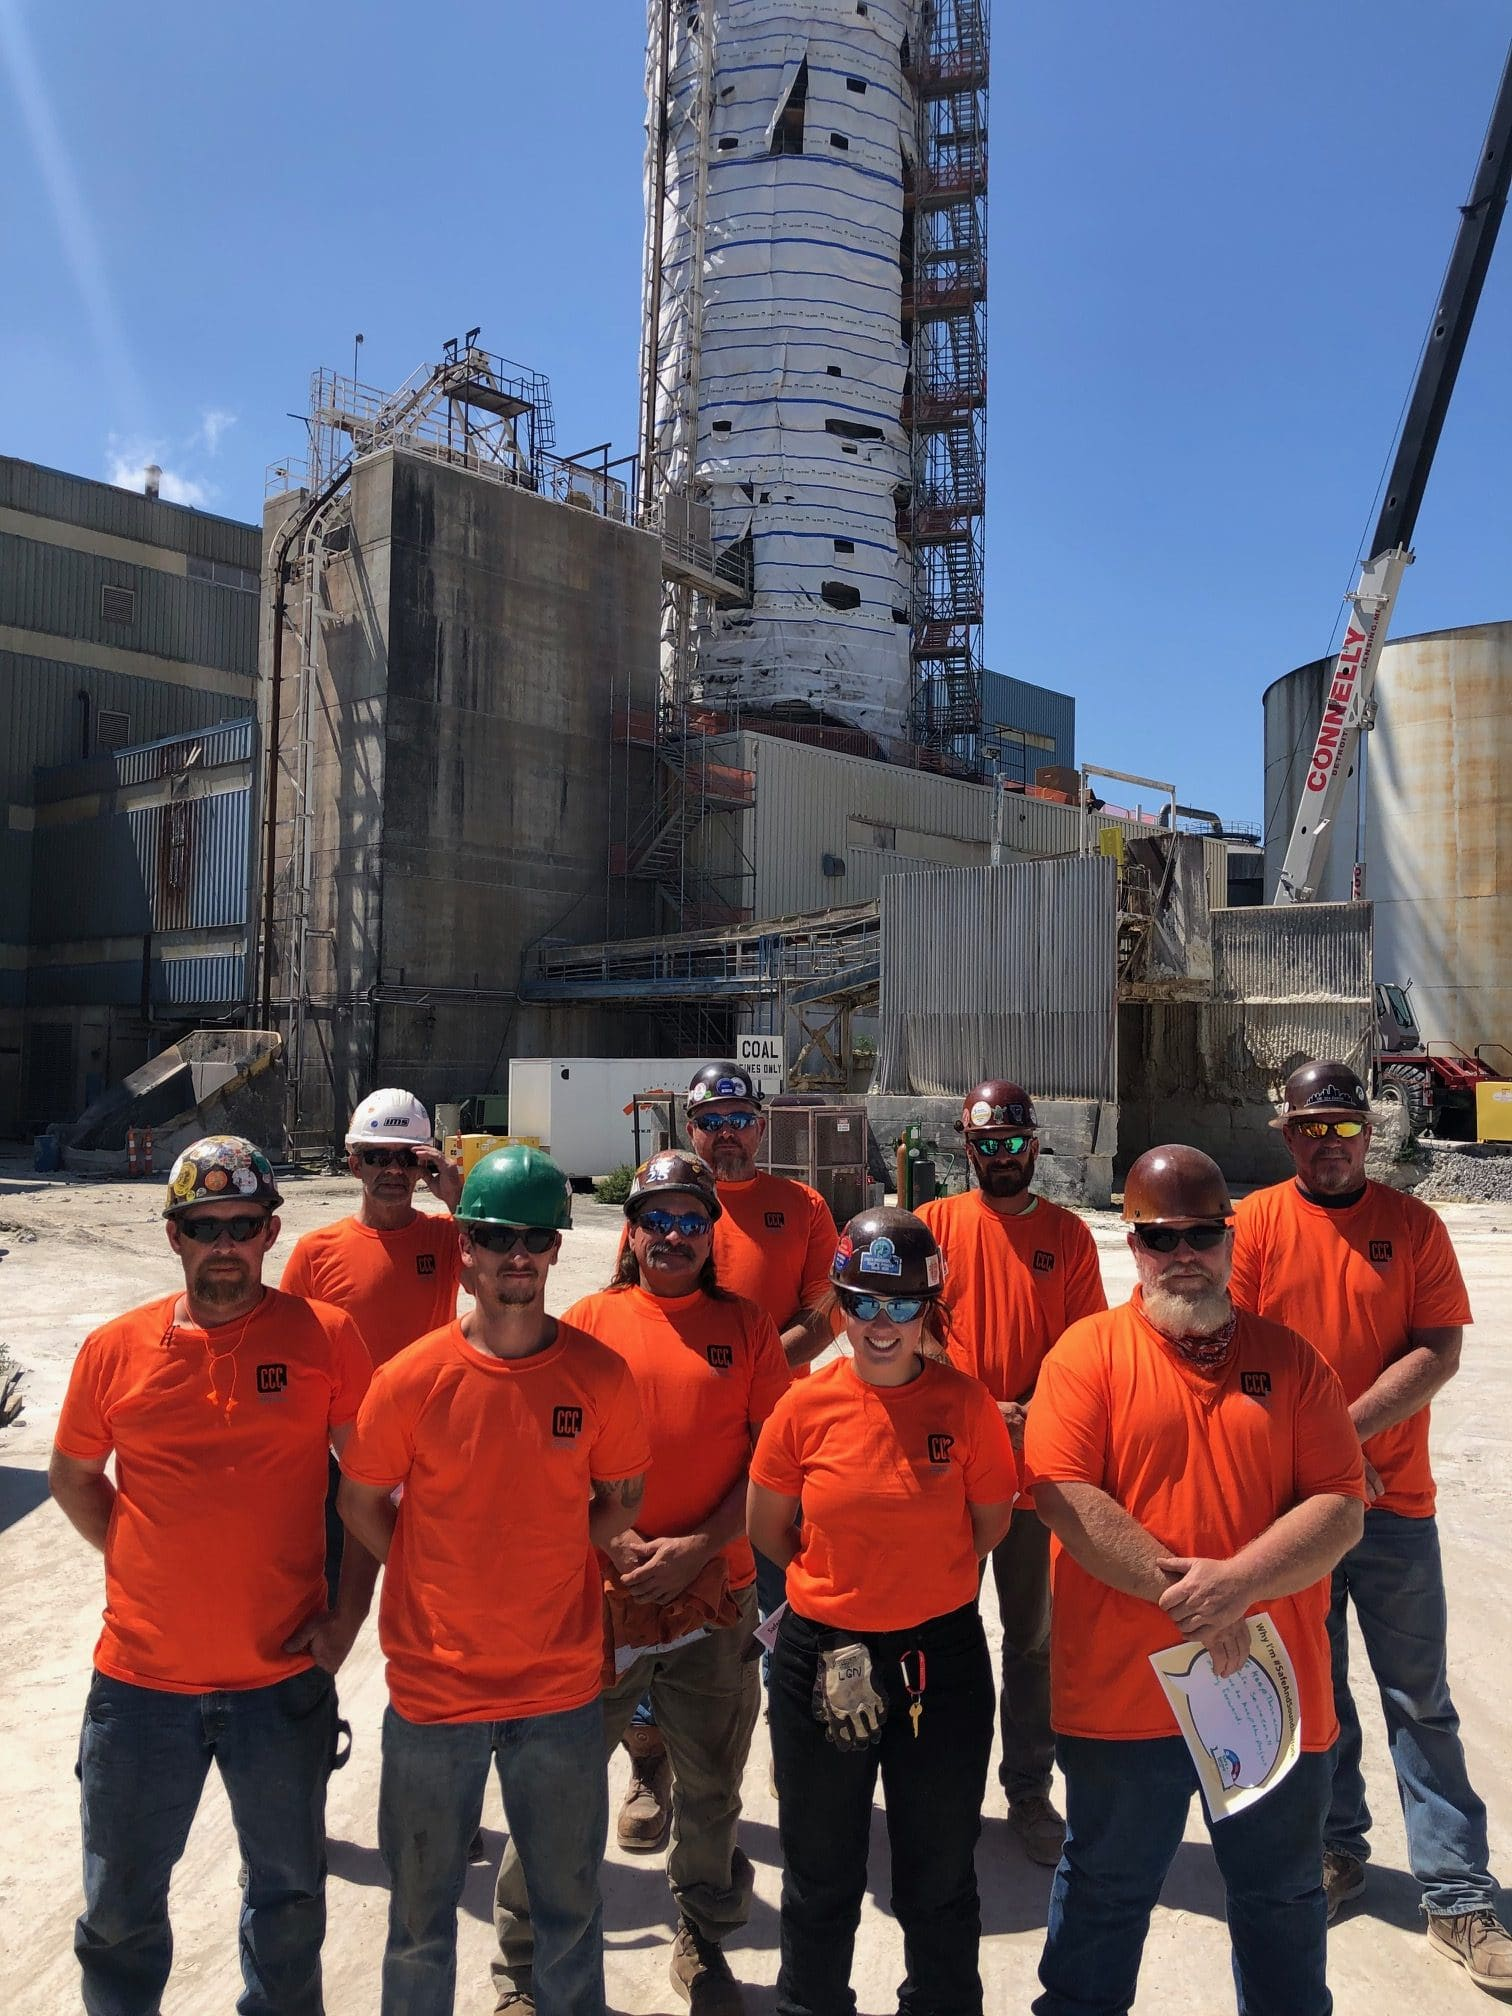 construction worker group photo in orange shirts (verticle)